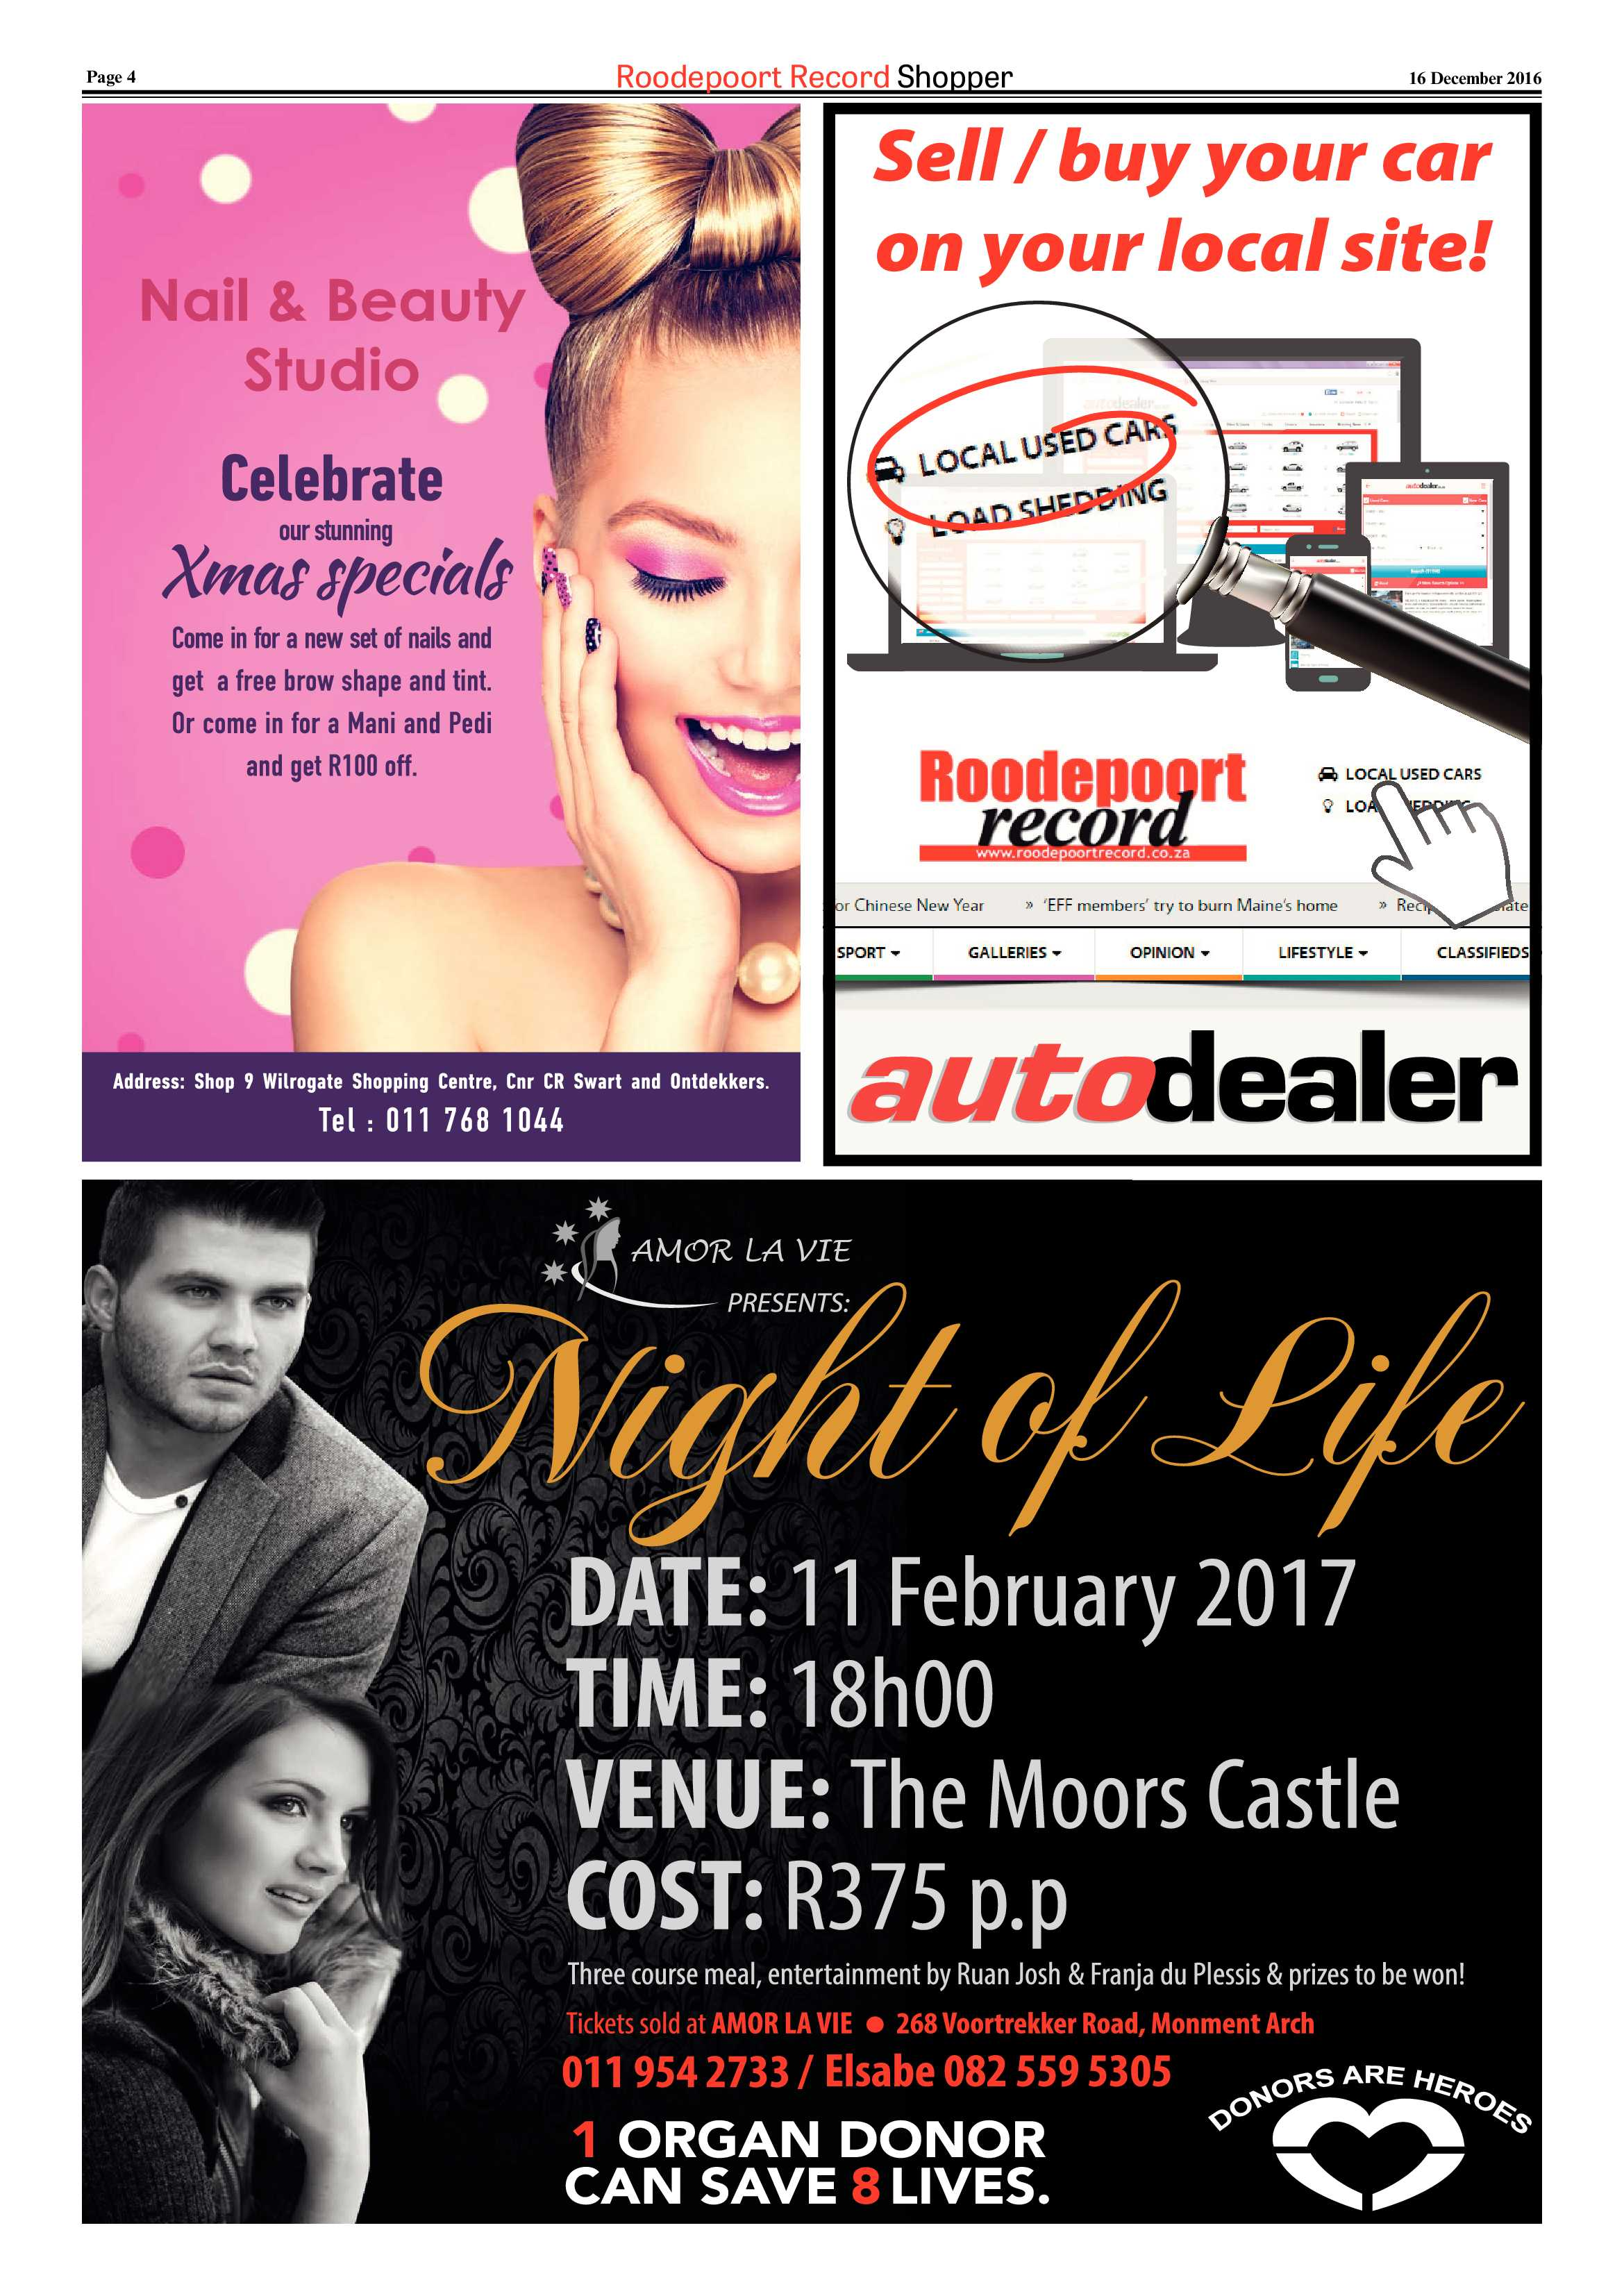 roodepoort-record-shopper-december-2016-epapers-page-4